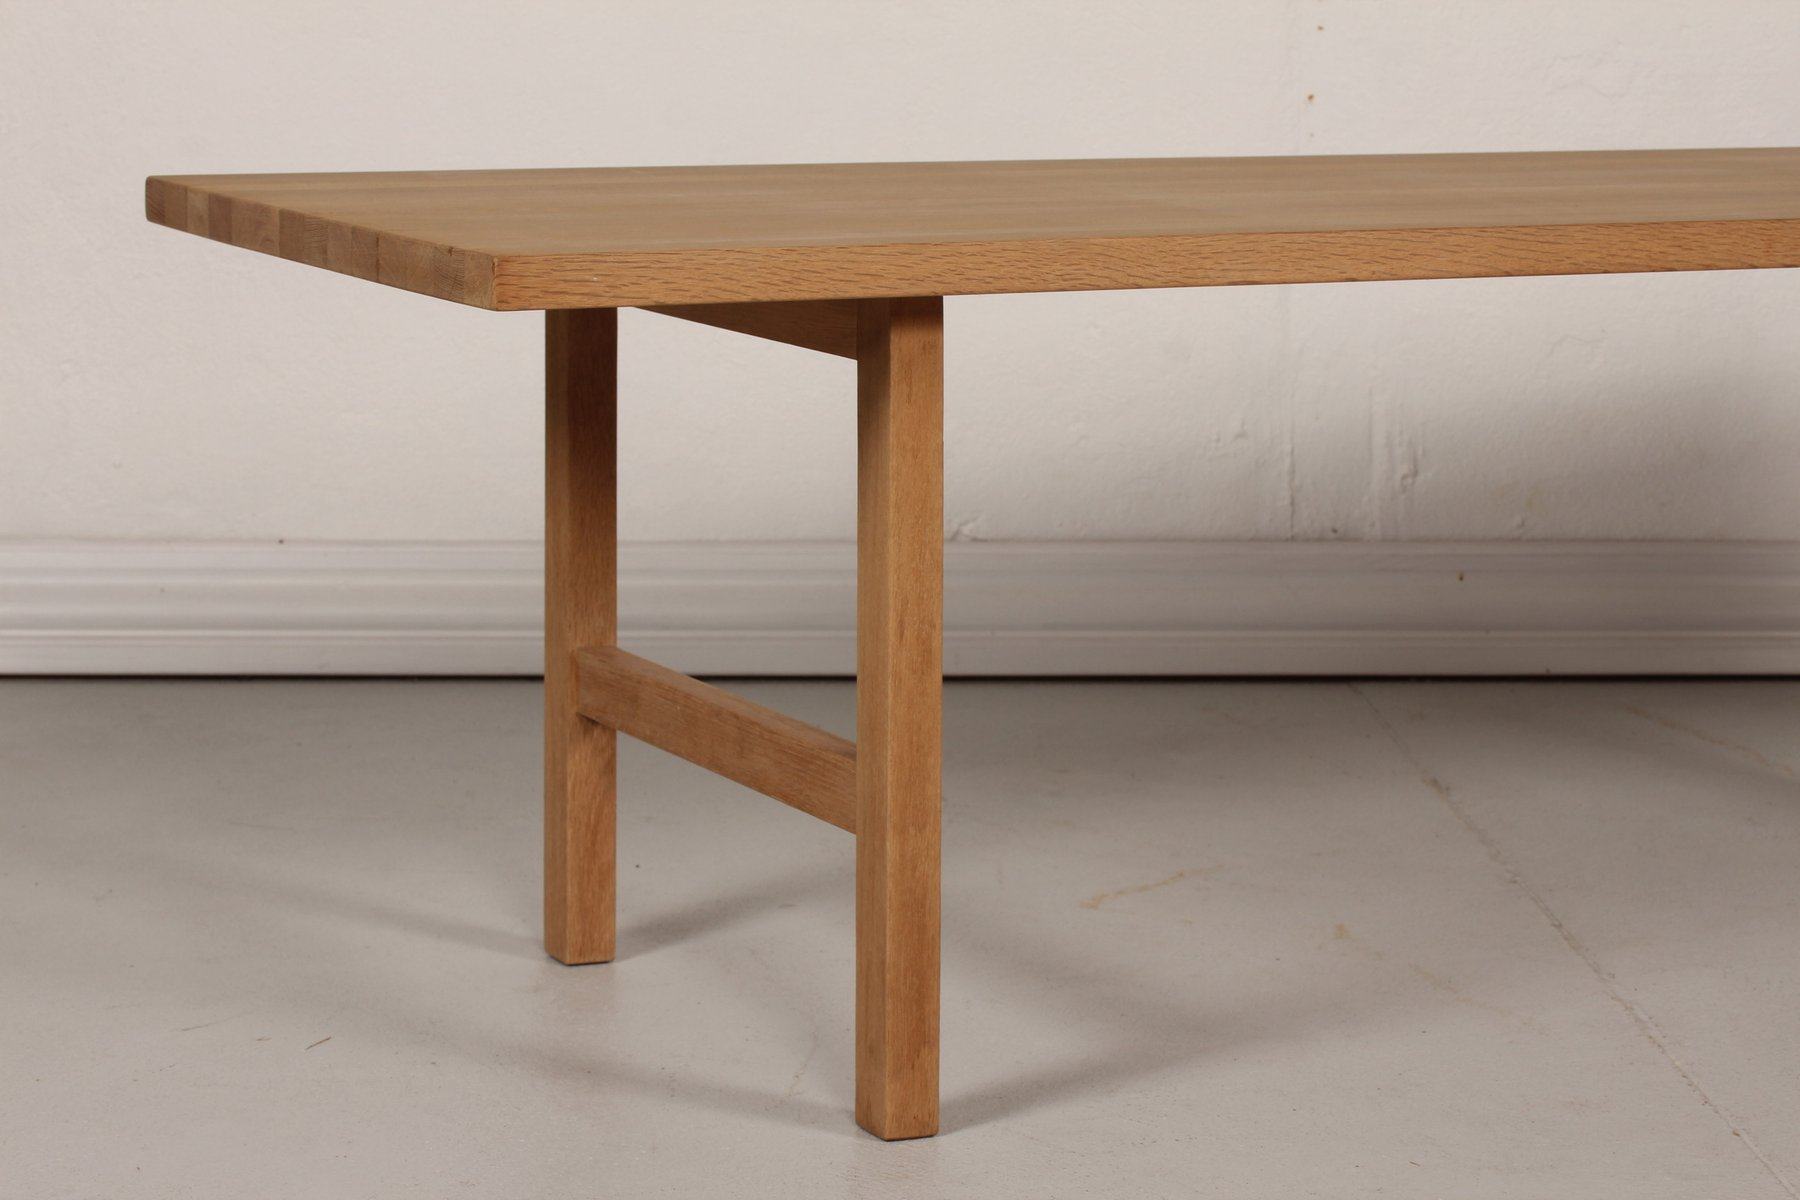 Vintage Danish Oak Long And Low Coffee Table, 1970s